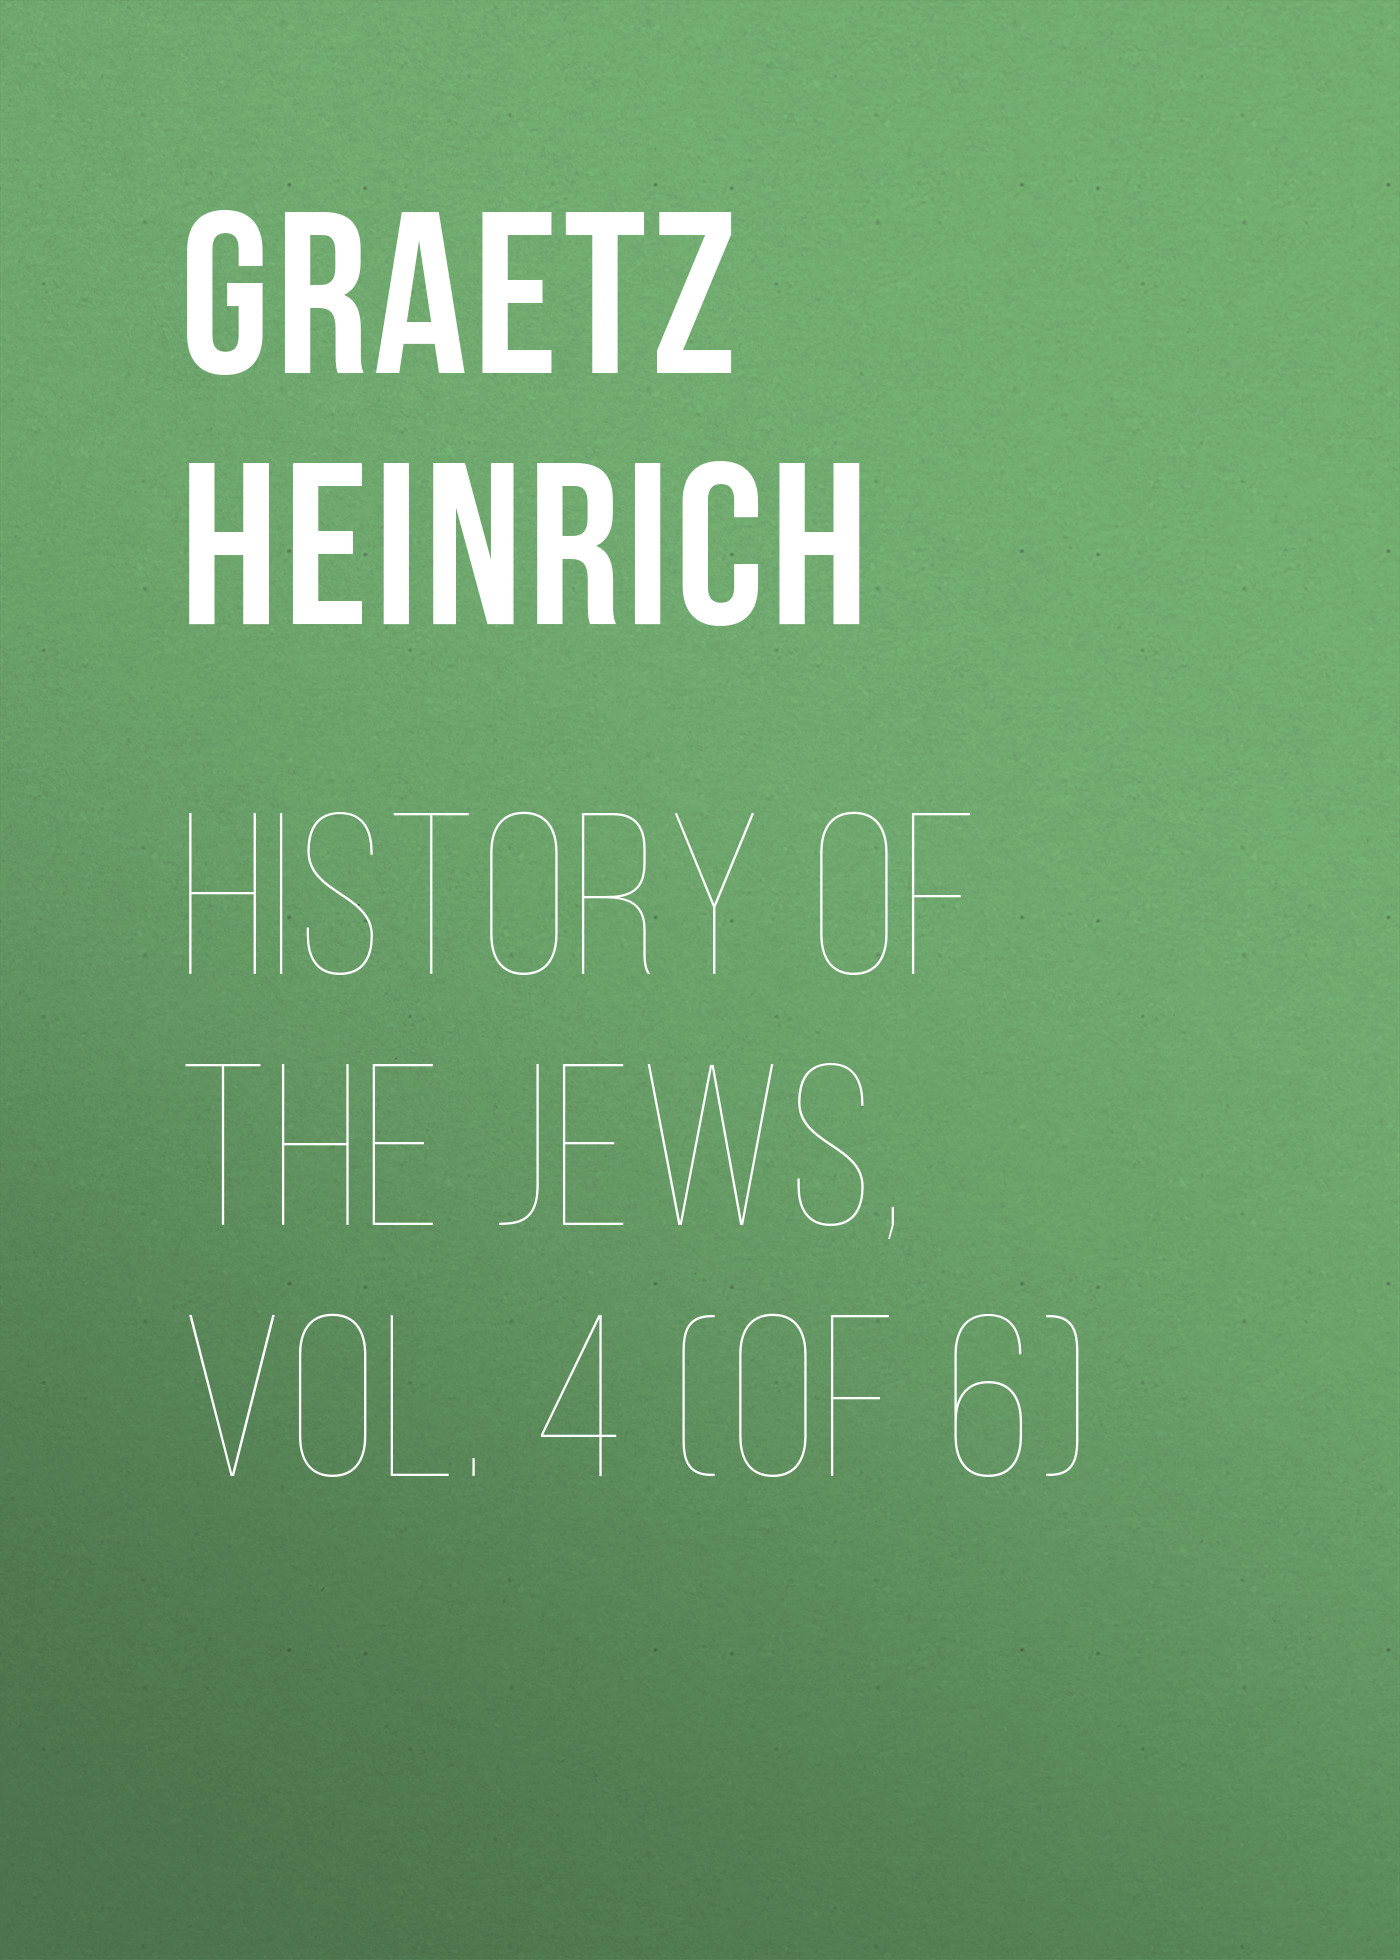 Graetz Heinrich History of the Jews, Vol. 4 (of 6) history of greece vol 4 classic reprint